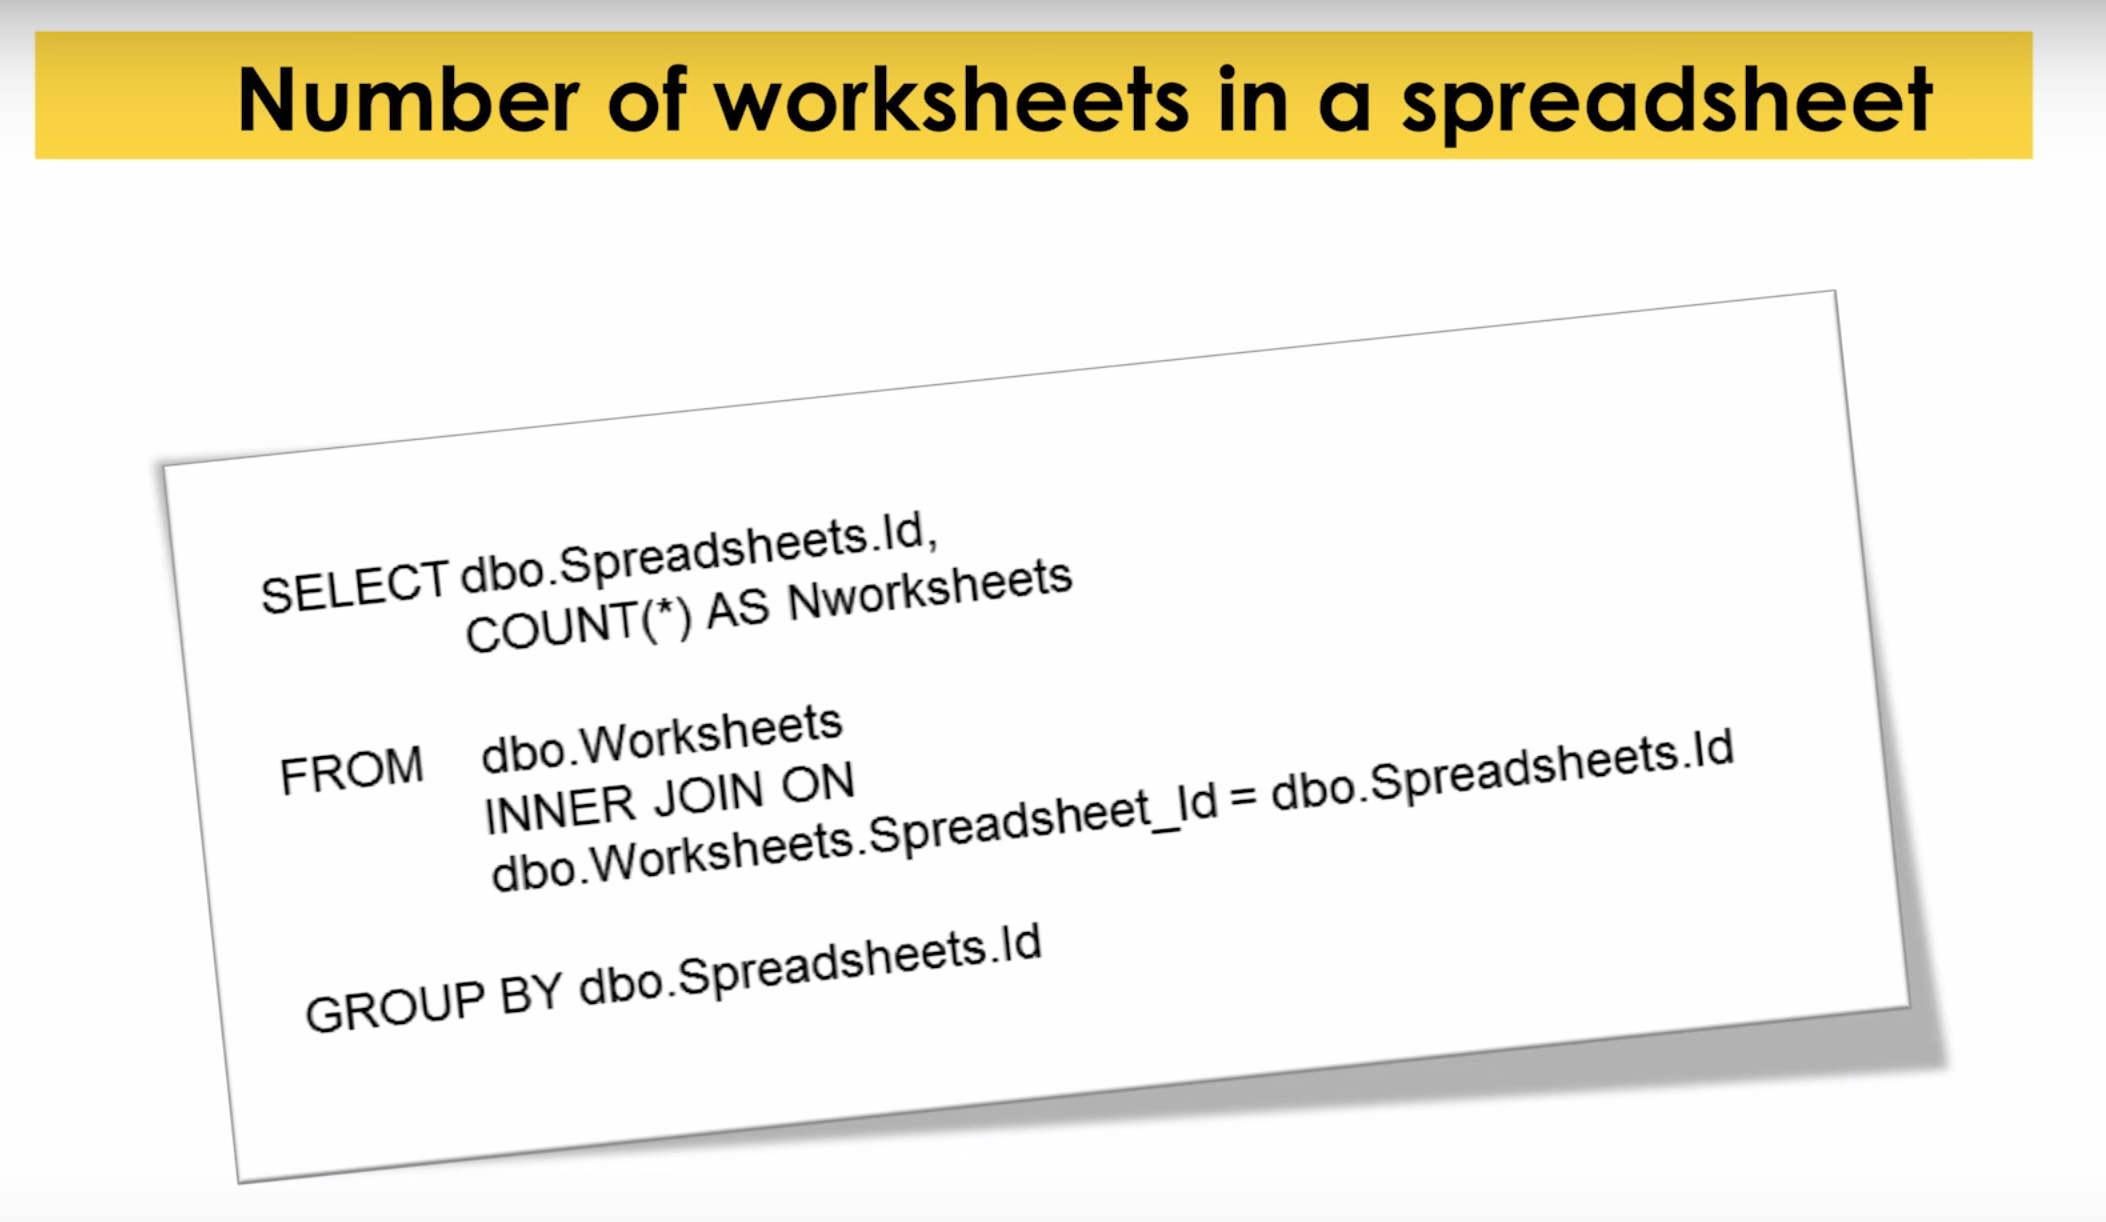 An SQL Query for the Number of Worksheets in a Spreadsheet